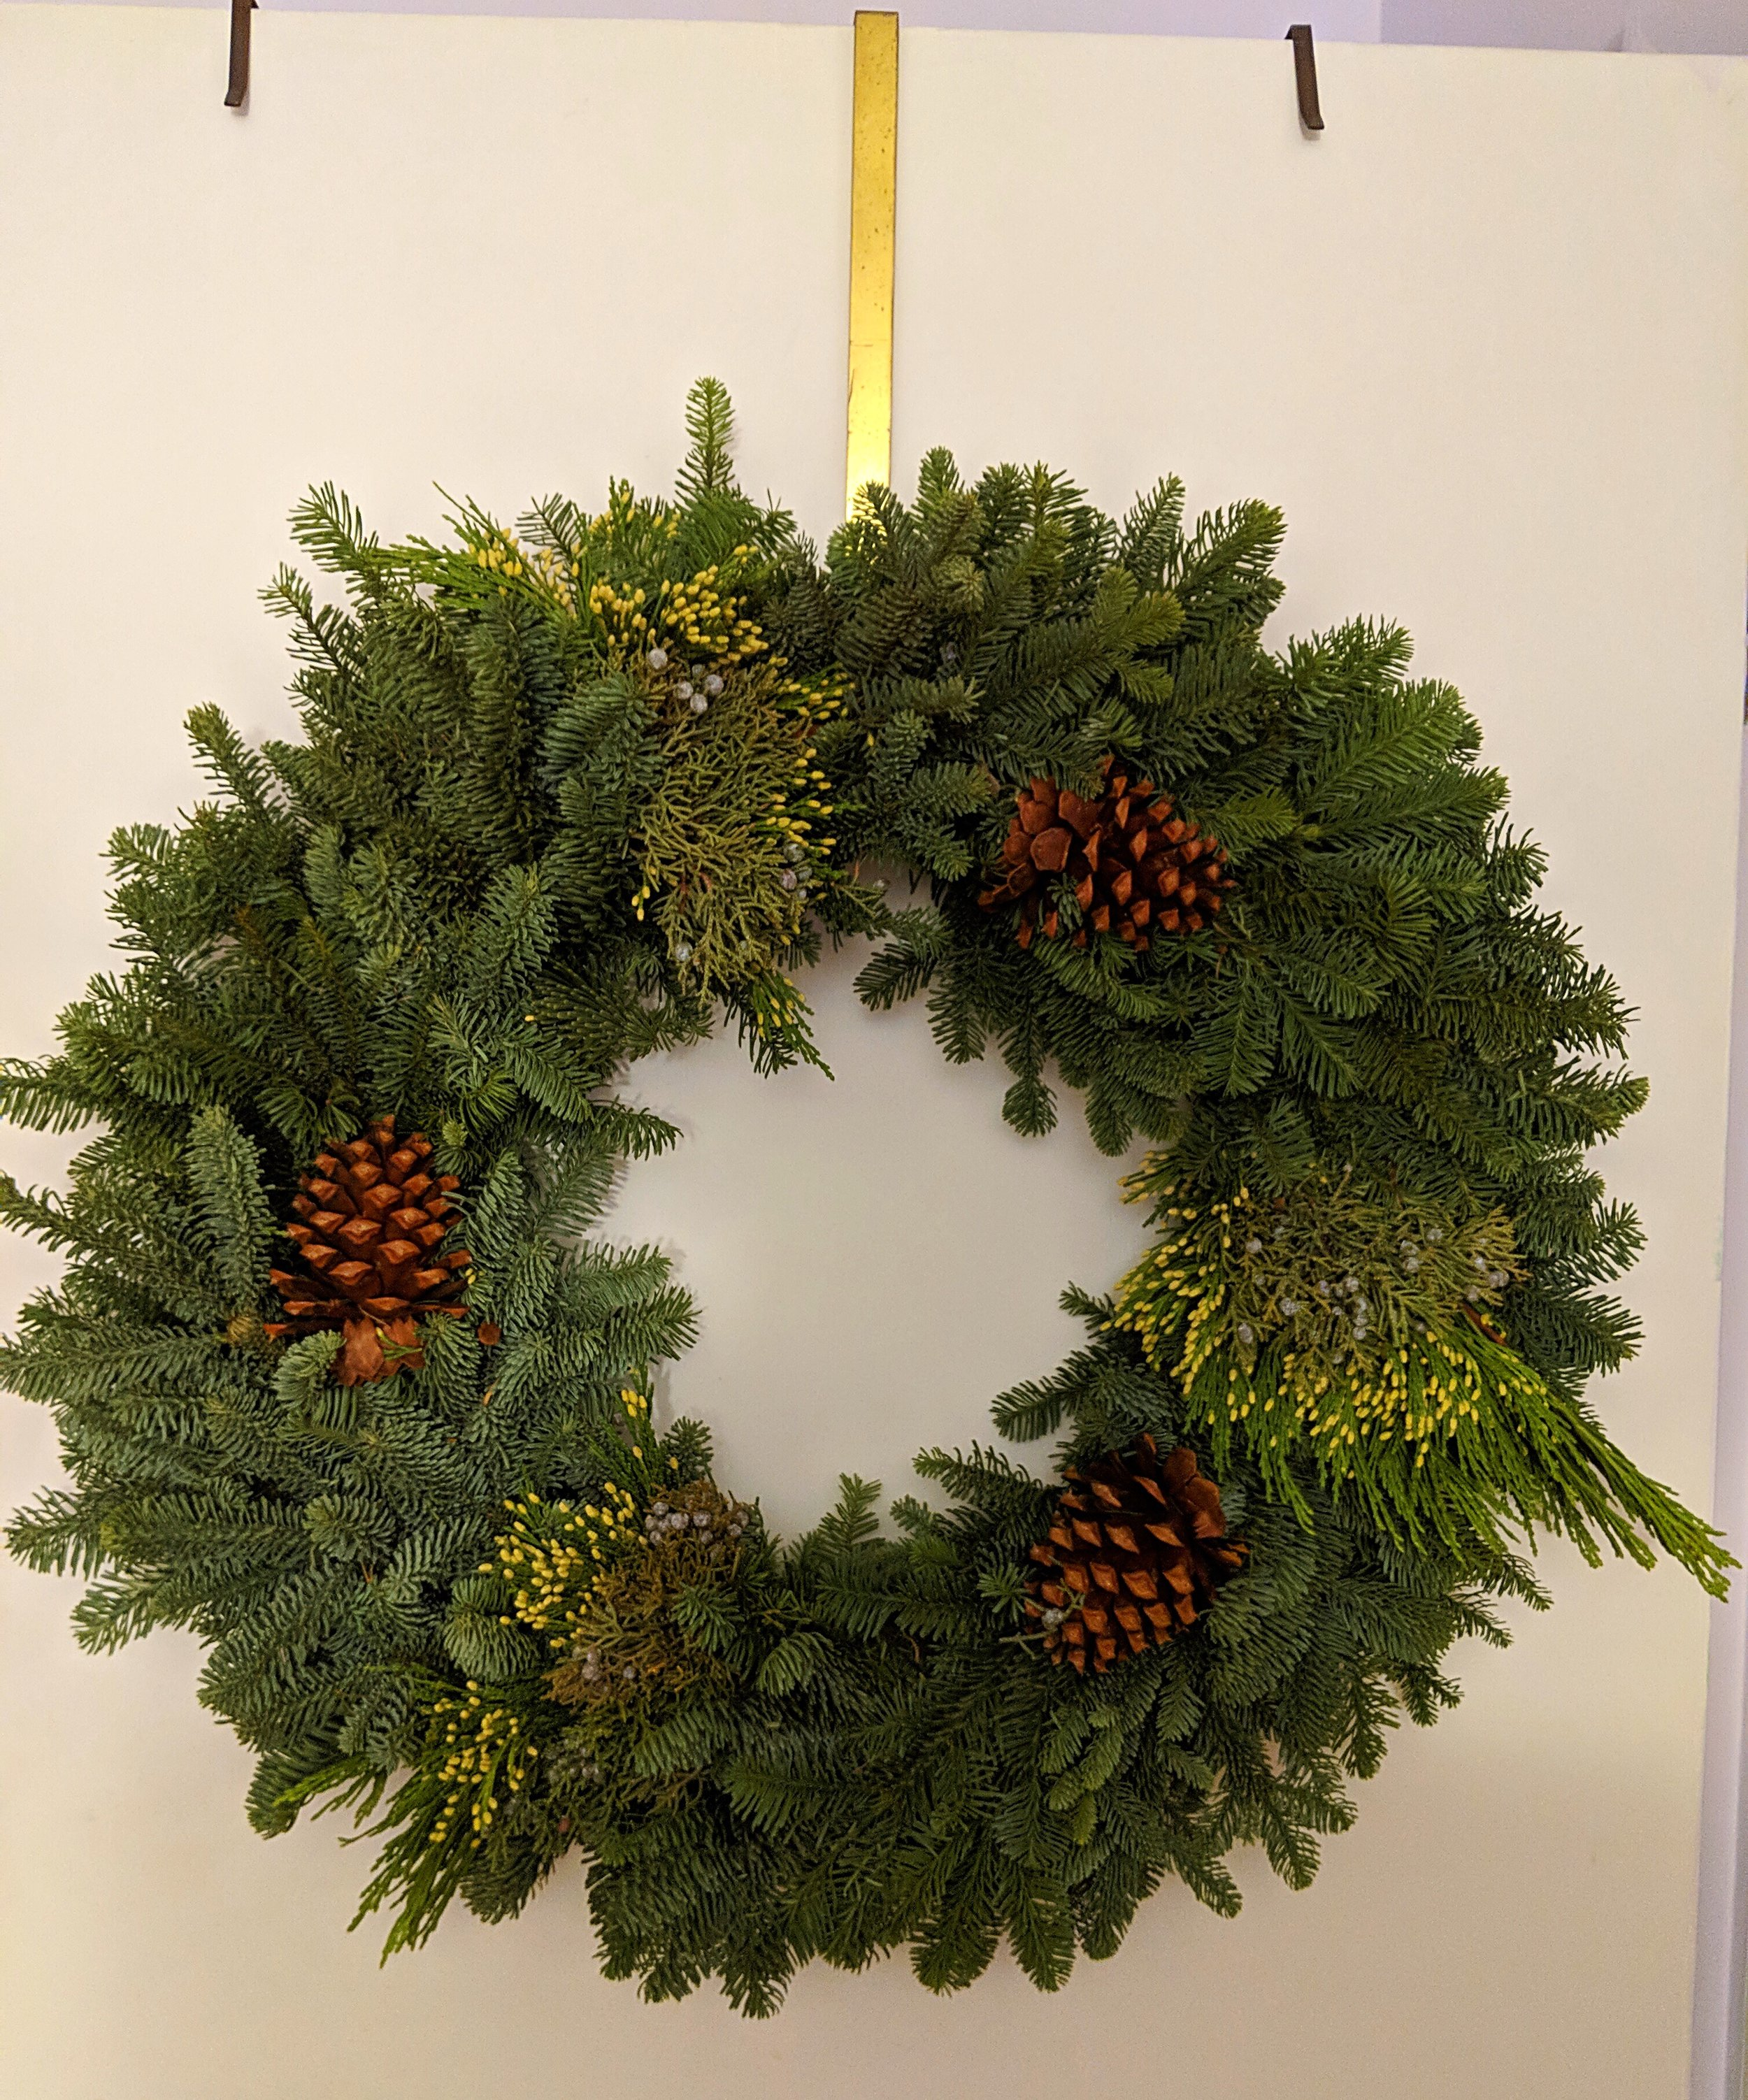 Wreath in our apartment. Hooray for bringing the holiday cheer inside!